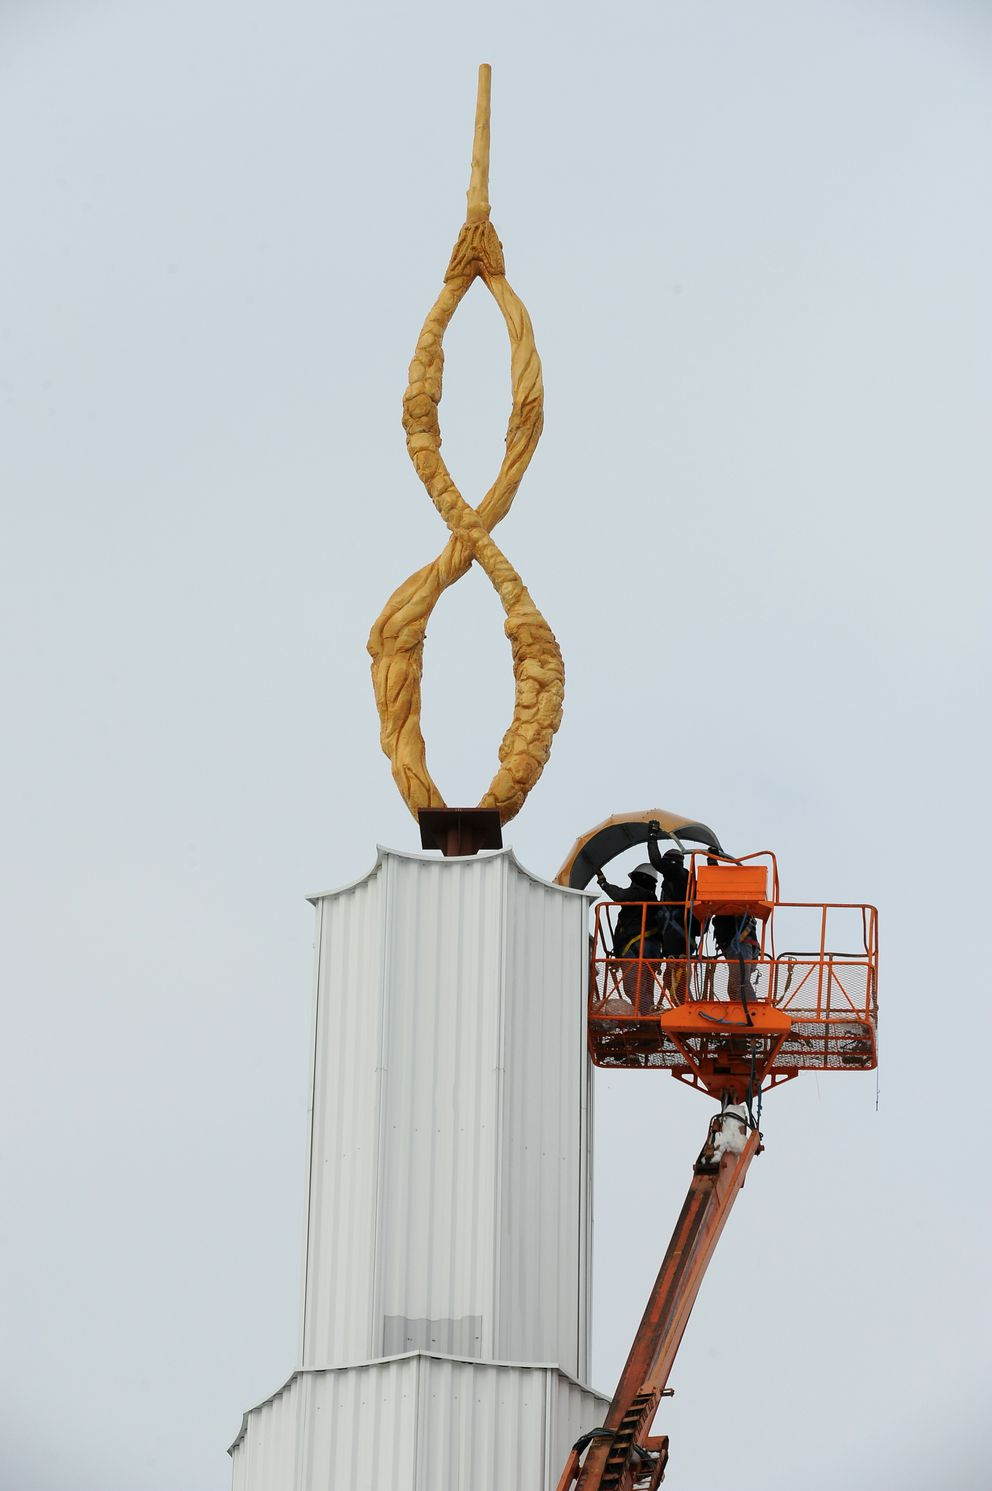 Pastor Isaac Aguirre, Miguel Mejivar and Naason Aguirre install the first section of the dome between the top section of the Iglesia La Luz Del Mundo church and the spire on March 15. The church is scheduled to be completed in the fall. (Bob Hallinen / ADN)